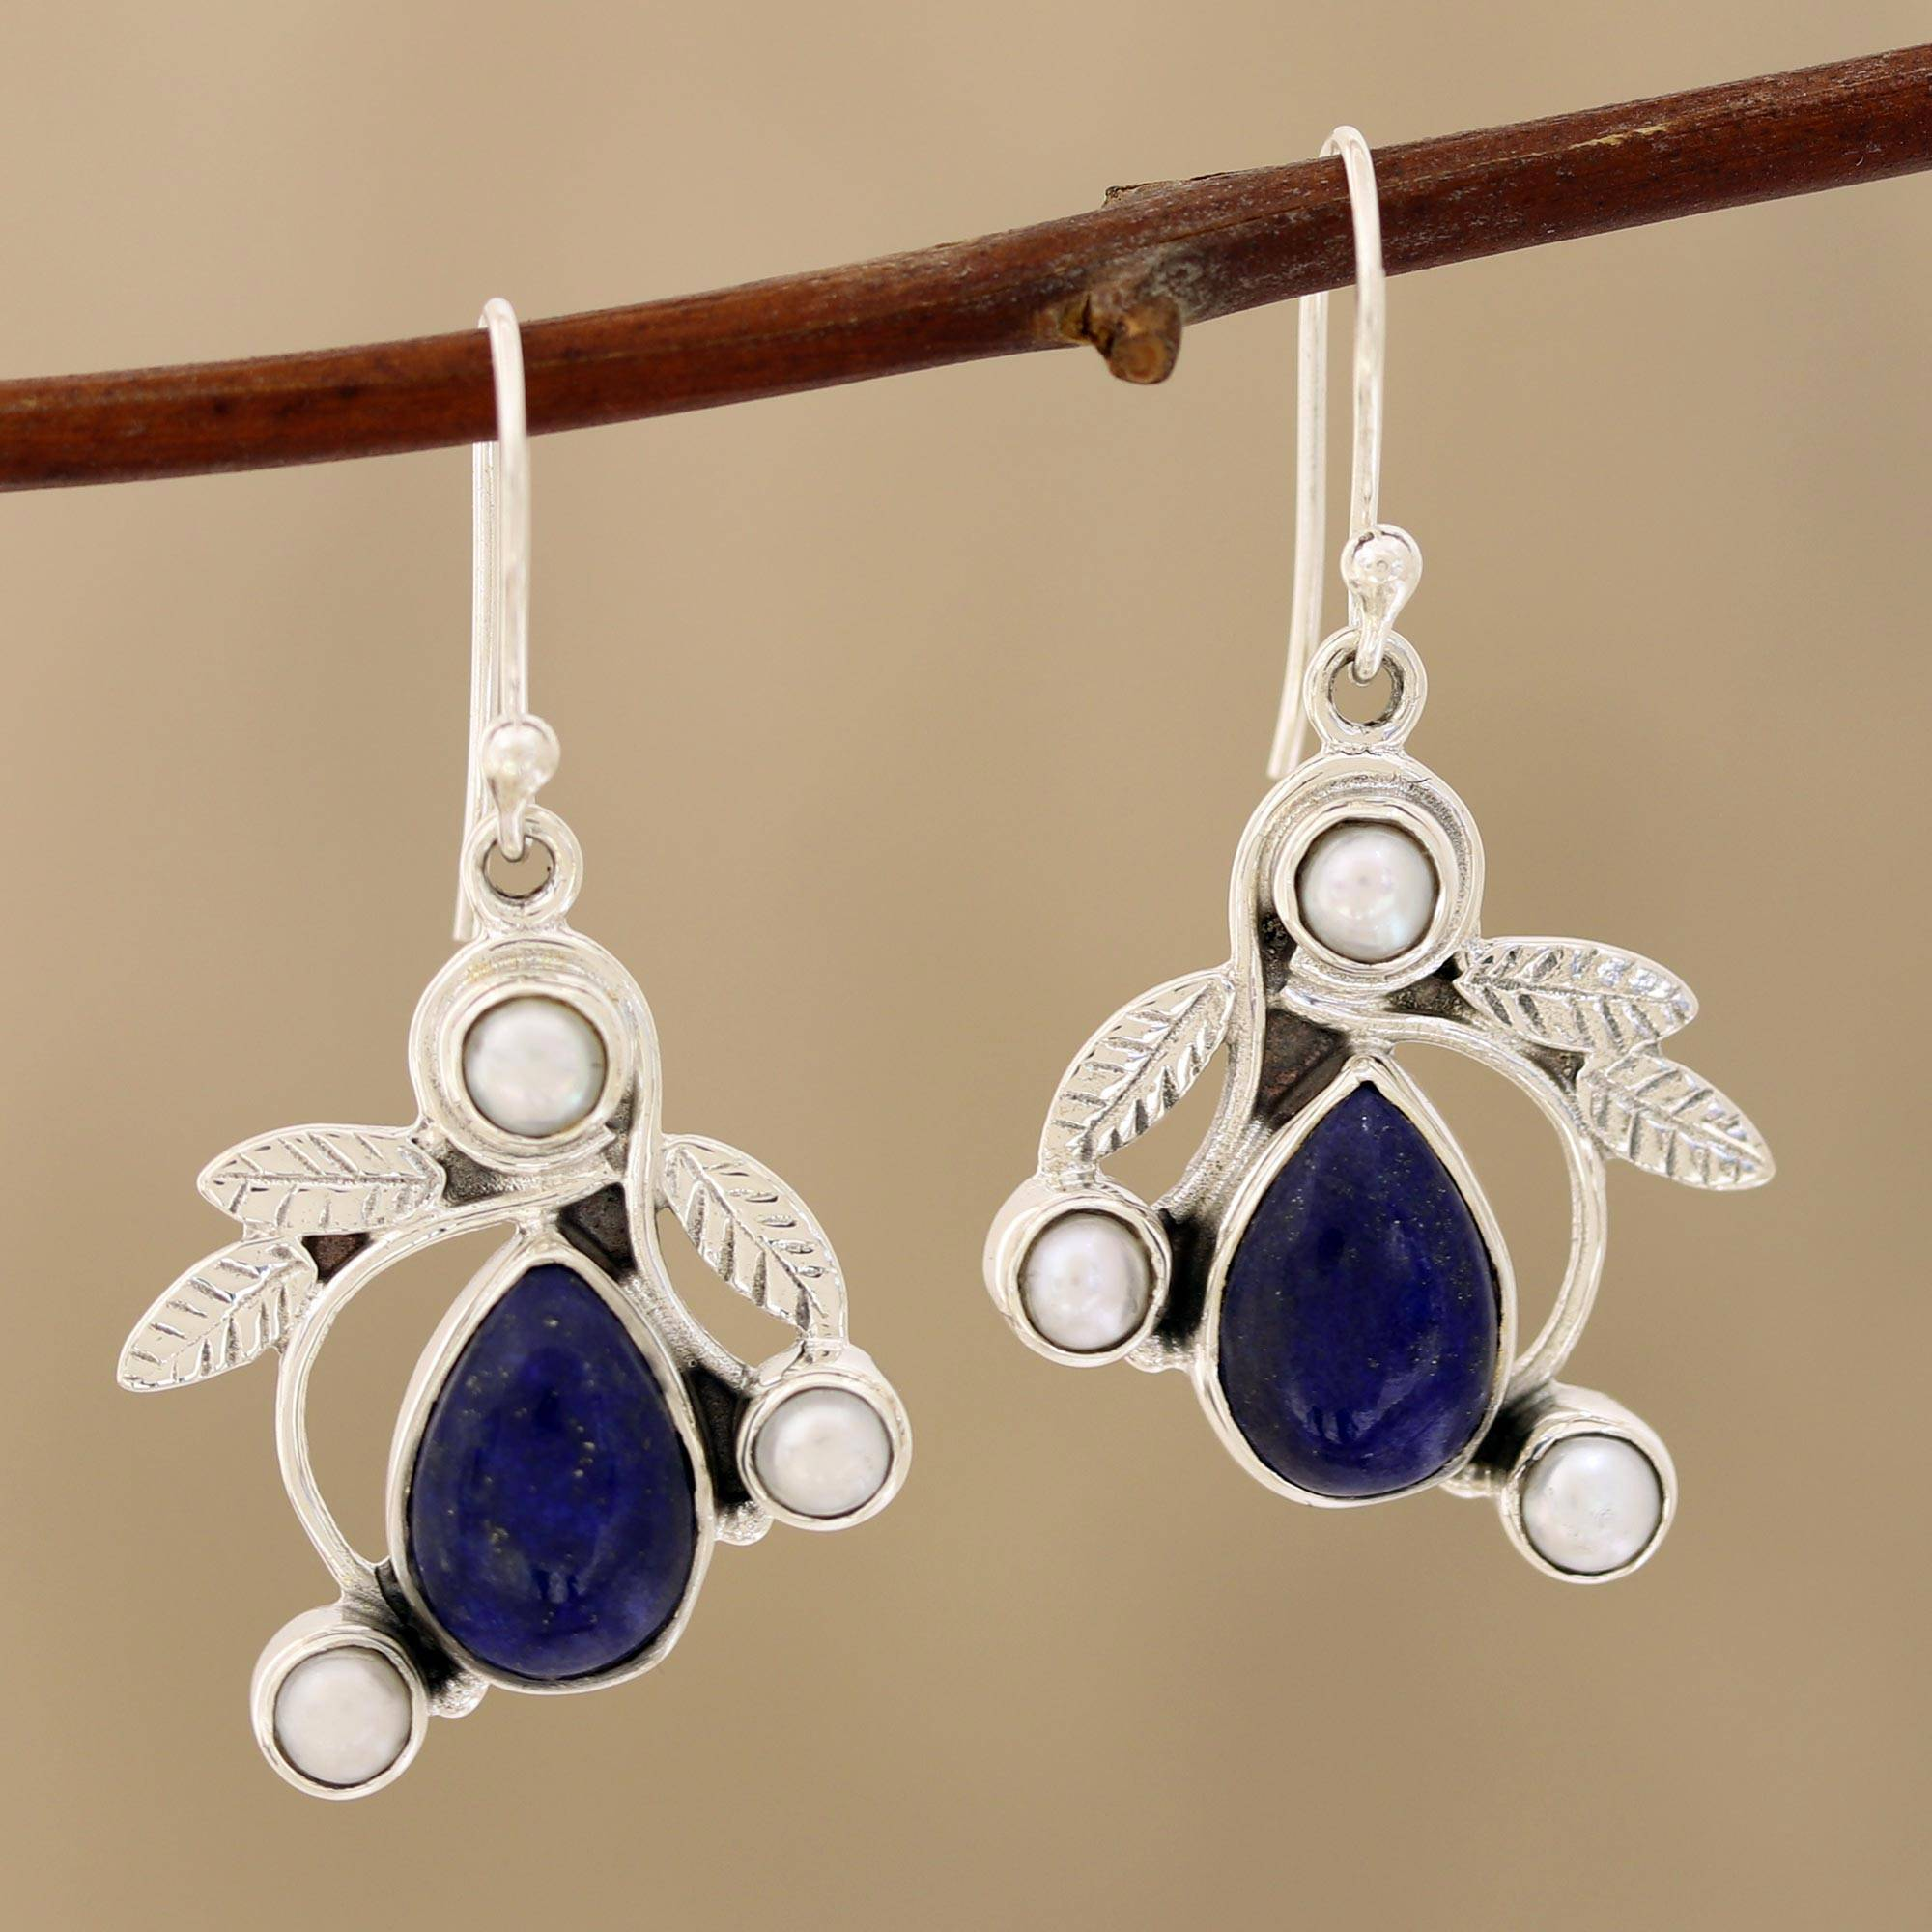 Lapis Lazuli Teardrop Earrings With Faceted Carnelian On Sterling Silver Artisan Hand Mad Ear Wires Gift For Her